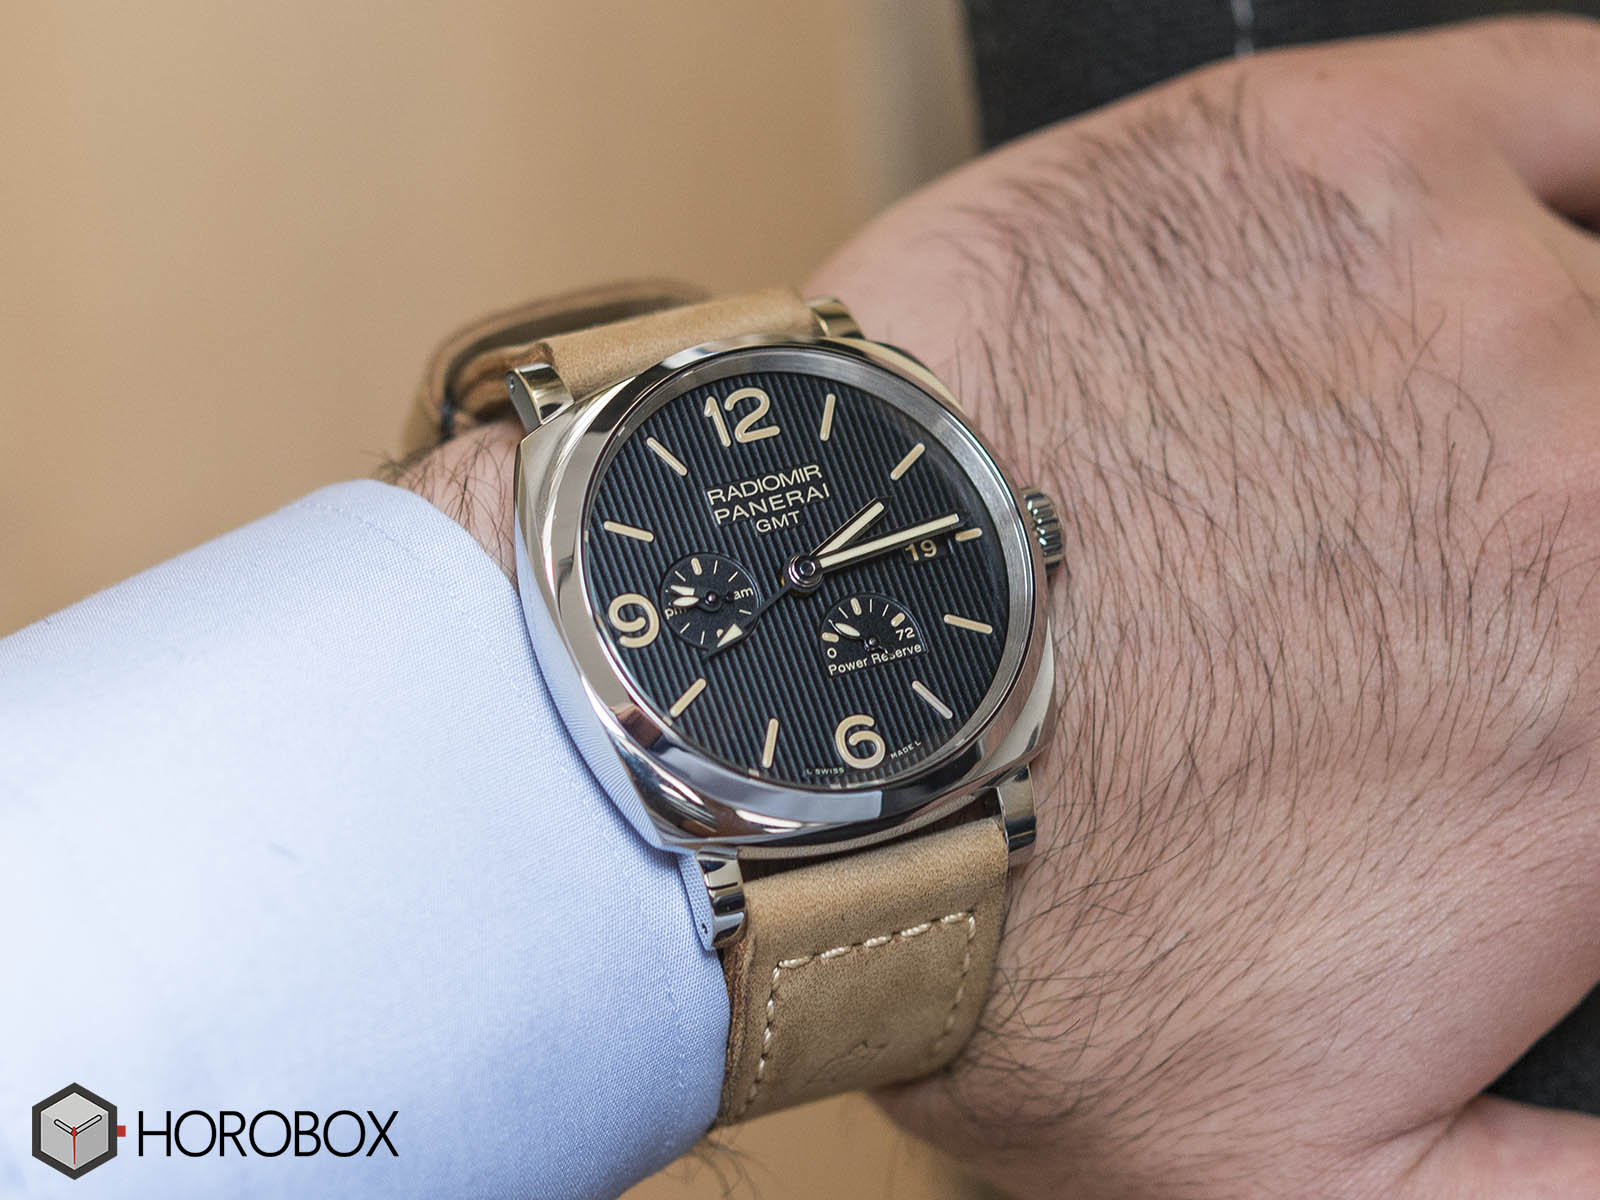 Officine-panerai-power-reserve-10.jpg